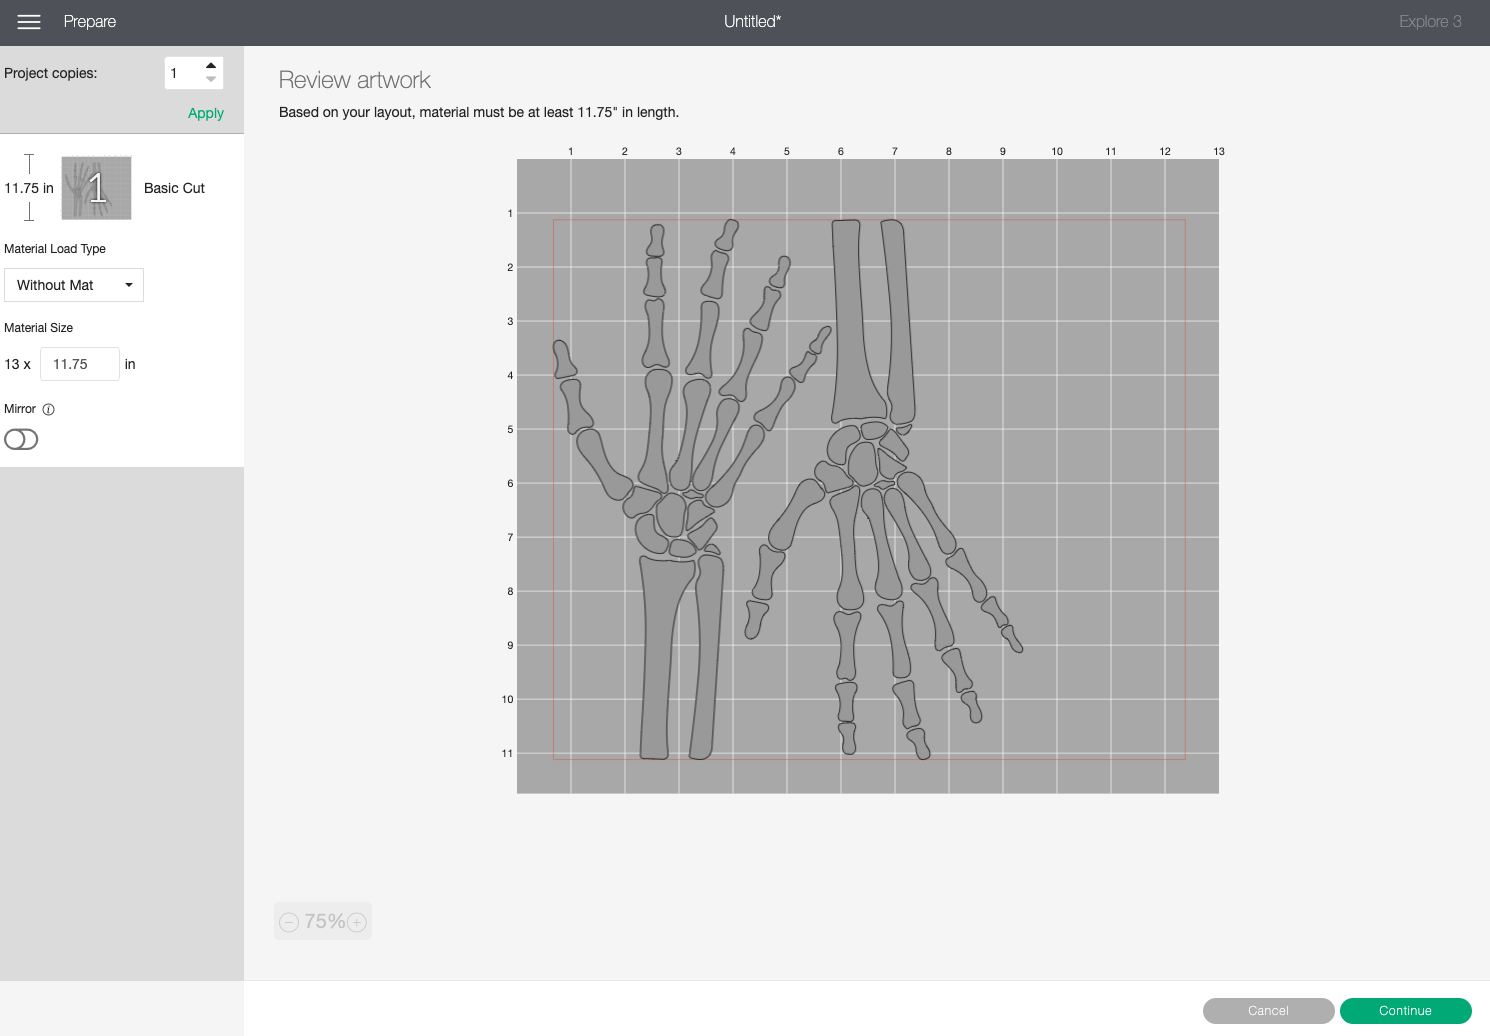 Cricut Design Space: Skeleton hands with one rotated to save material.